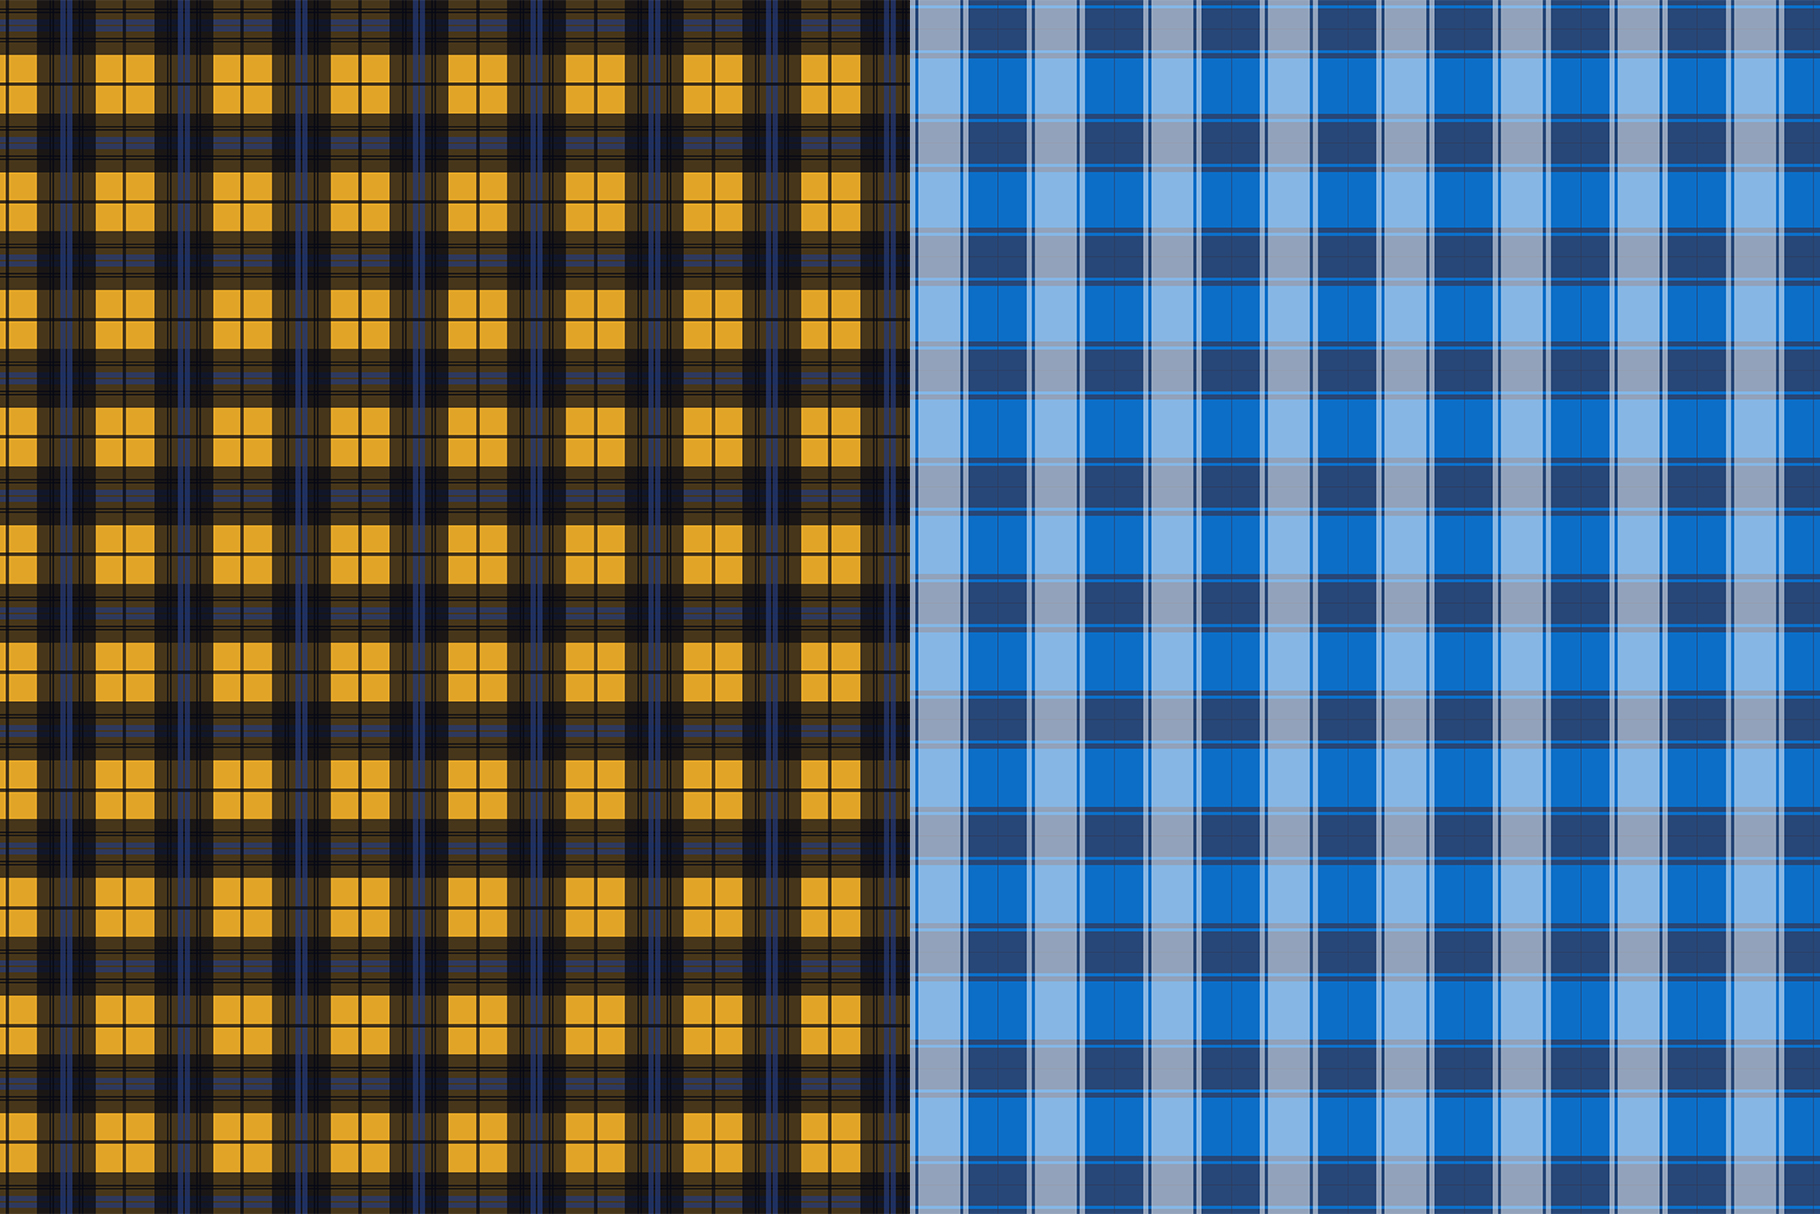 10 Checkered Patterns example image 10